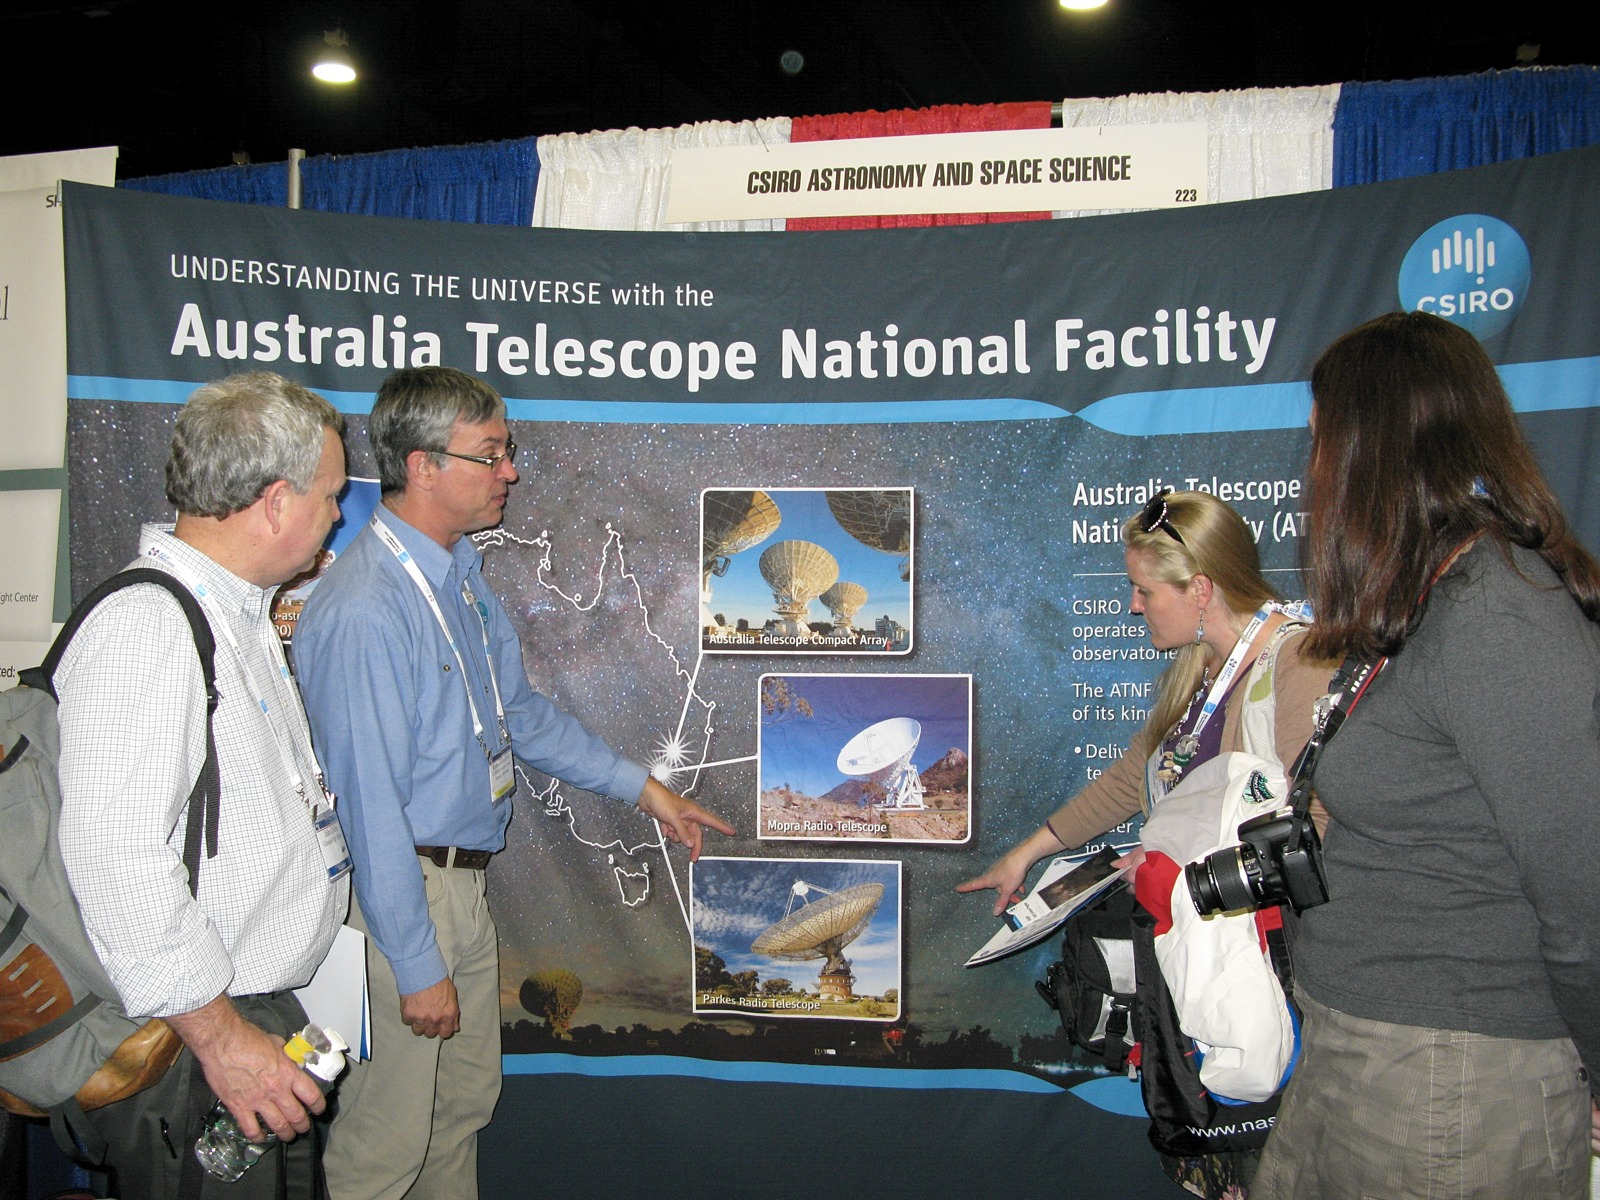 CASS Education Officer Rob Hollow talks to conference attendees about the Australia Telescope National Facility (ATNF).